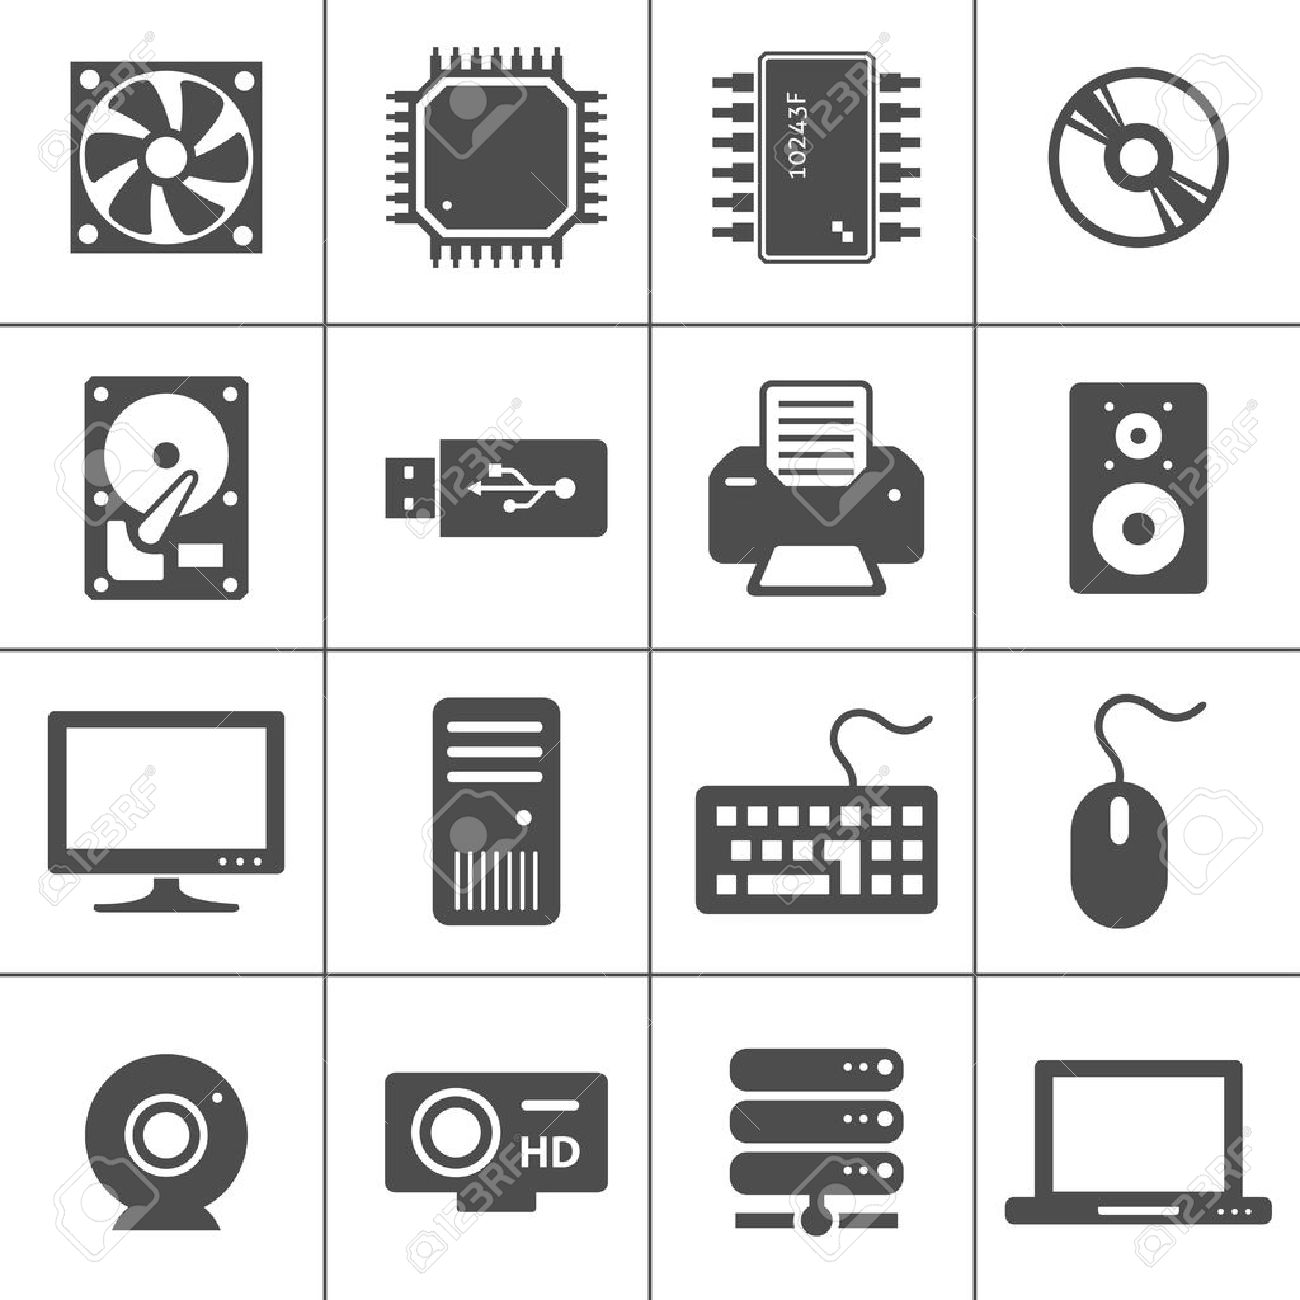 Computer Hardware Icons  PC Components  Each icon is a single object  compound path Stock Vector - 15363997